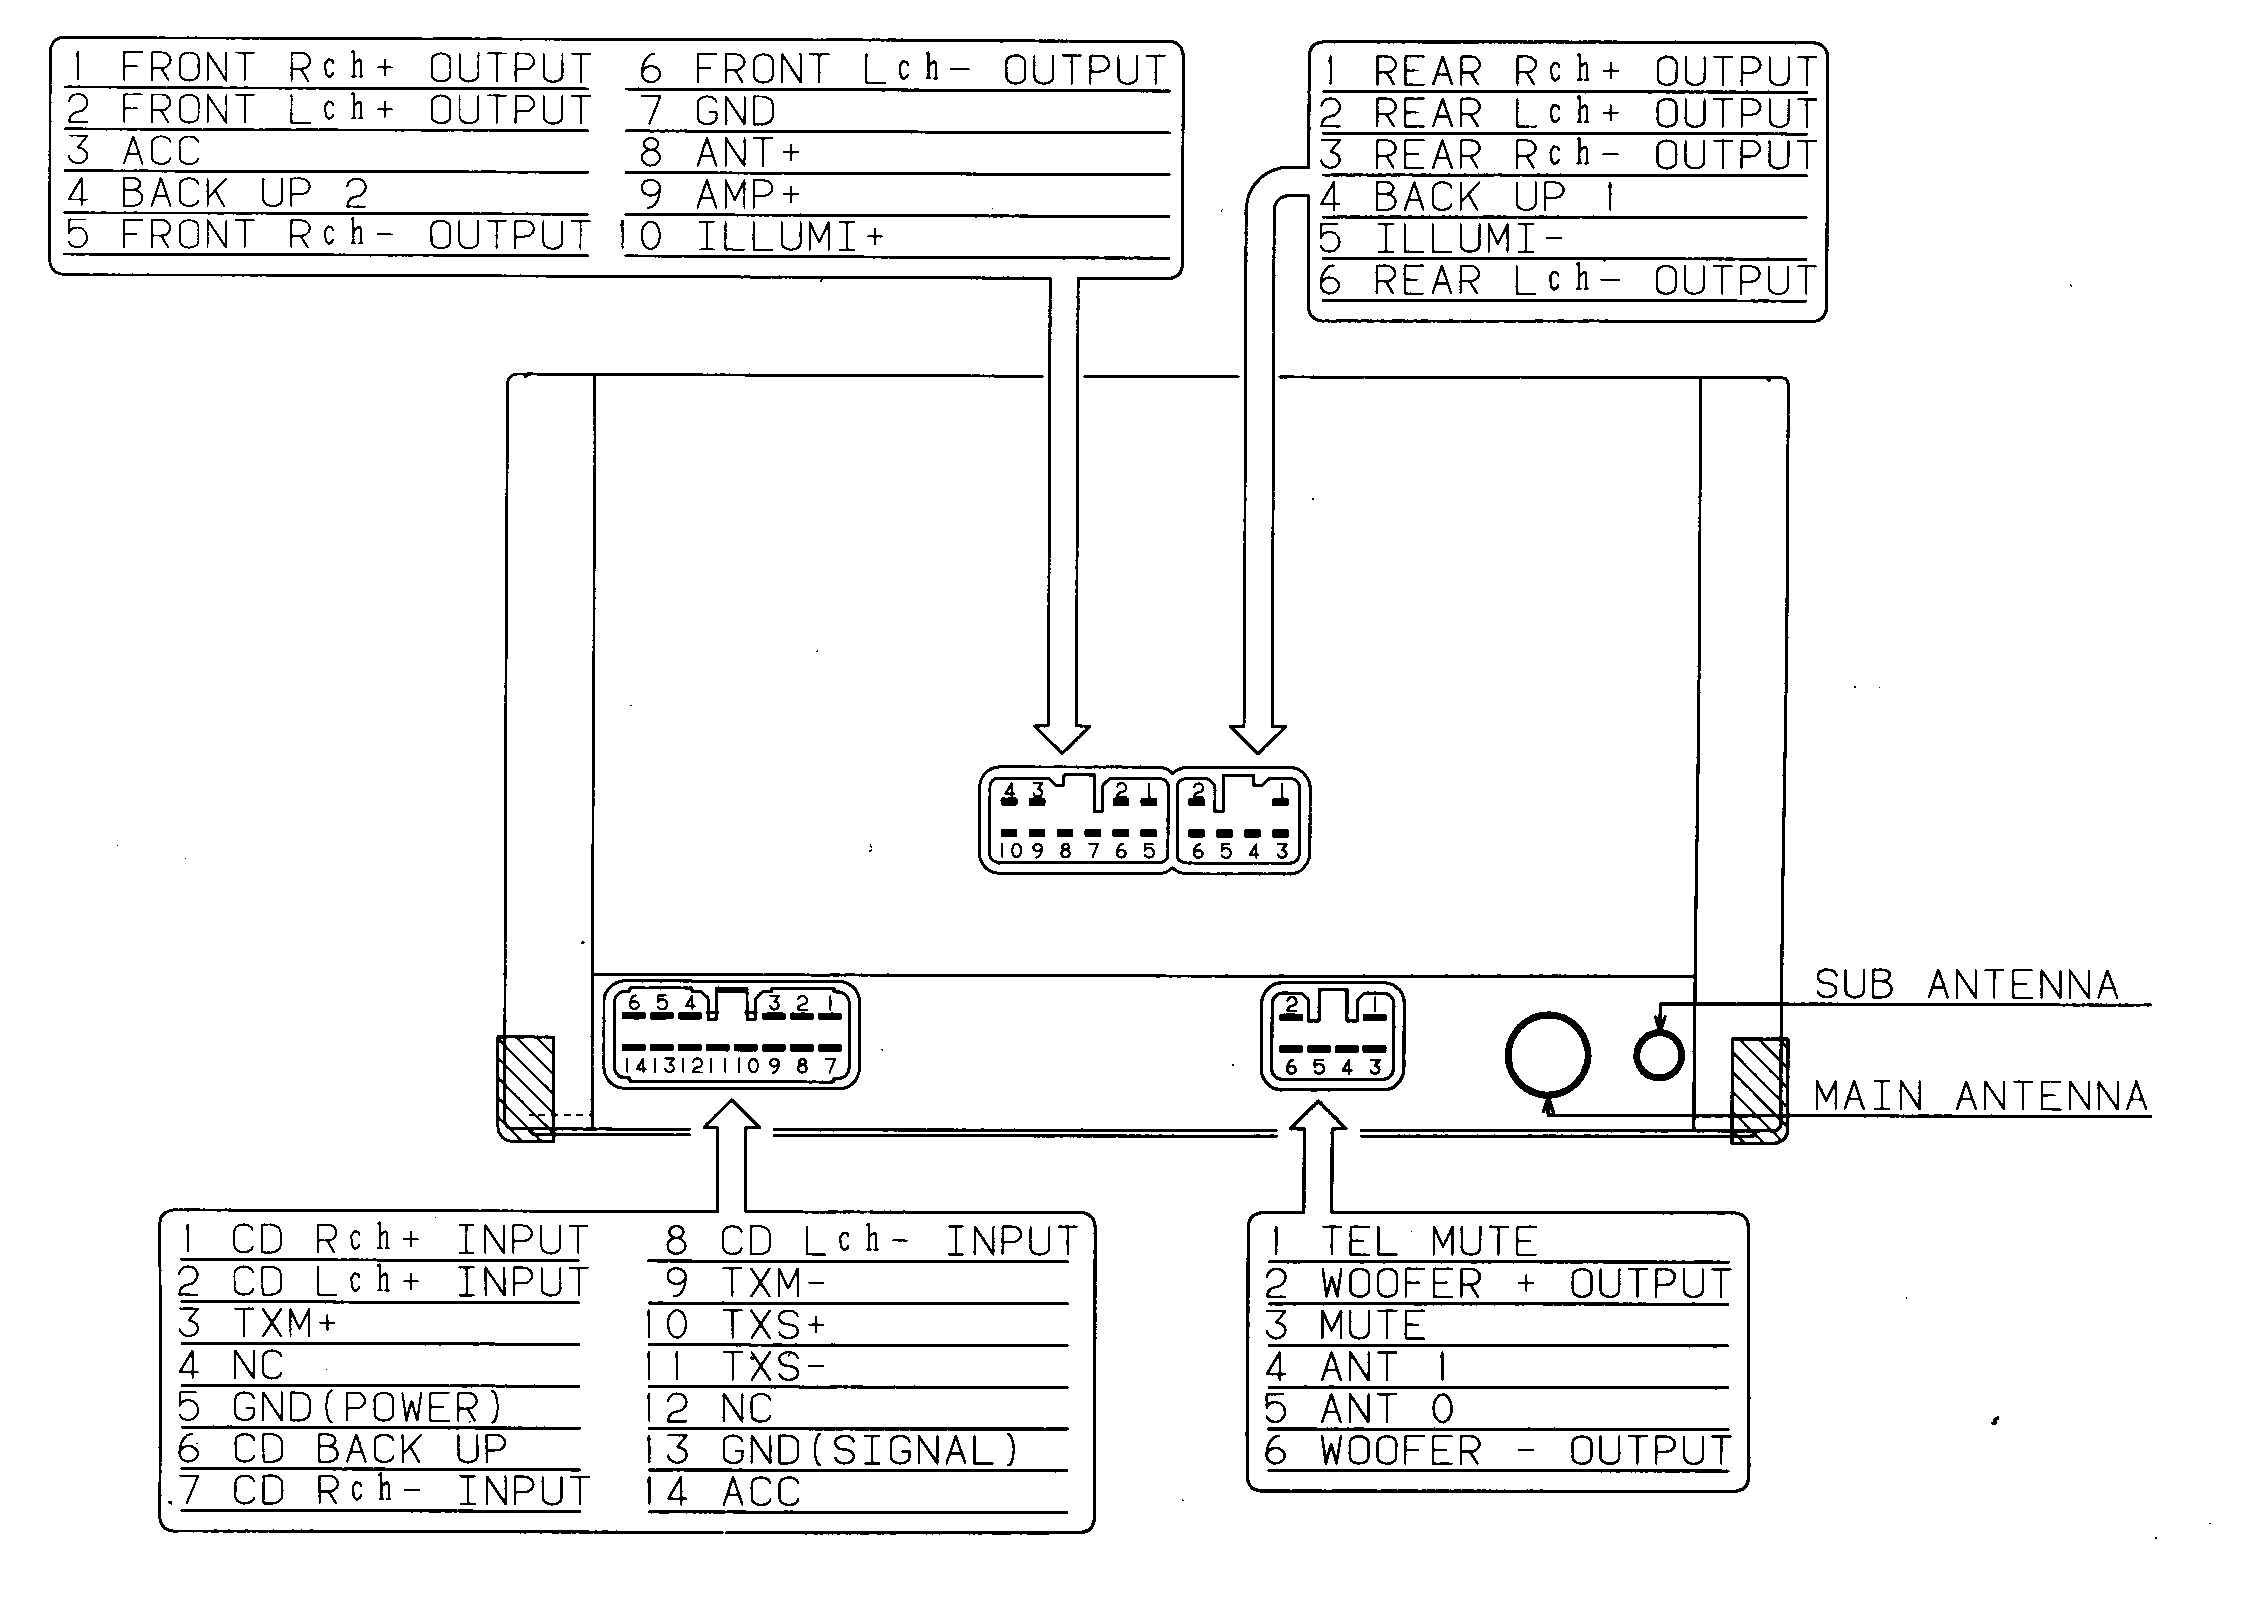 Lexus car stereo wiring diagram harness pinout connector wire lexus es300 radio wiring diagram 2002 lexus es300 radio wiring  at edmiracle.co